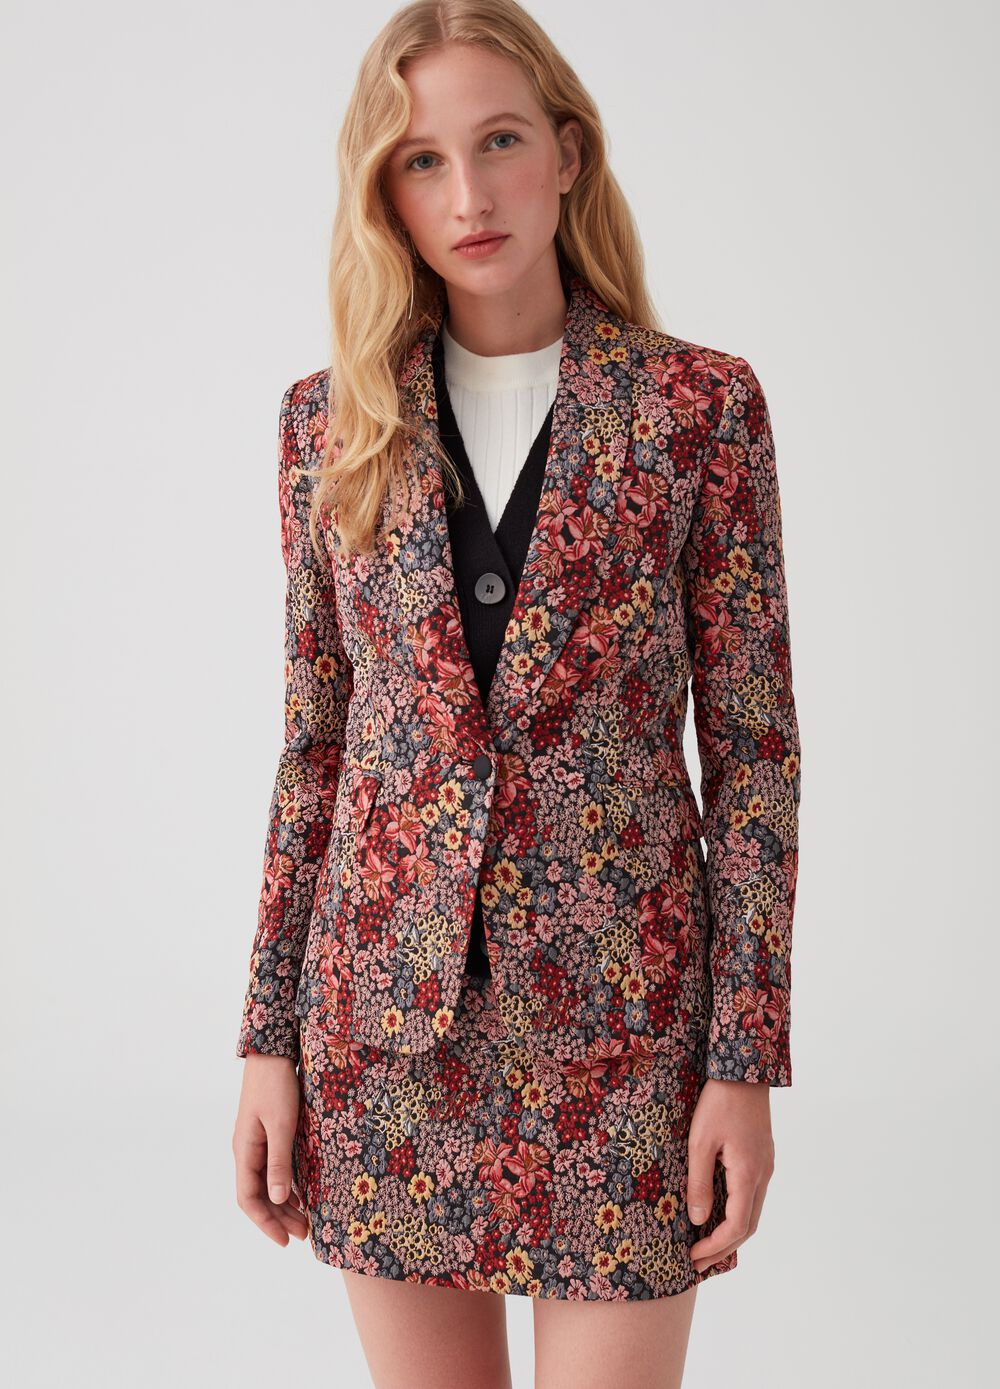 Fitted single-breasted blazer with floral jacquard